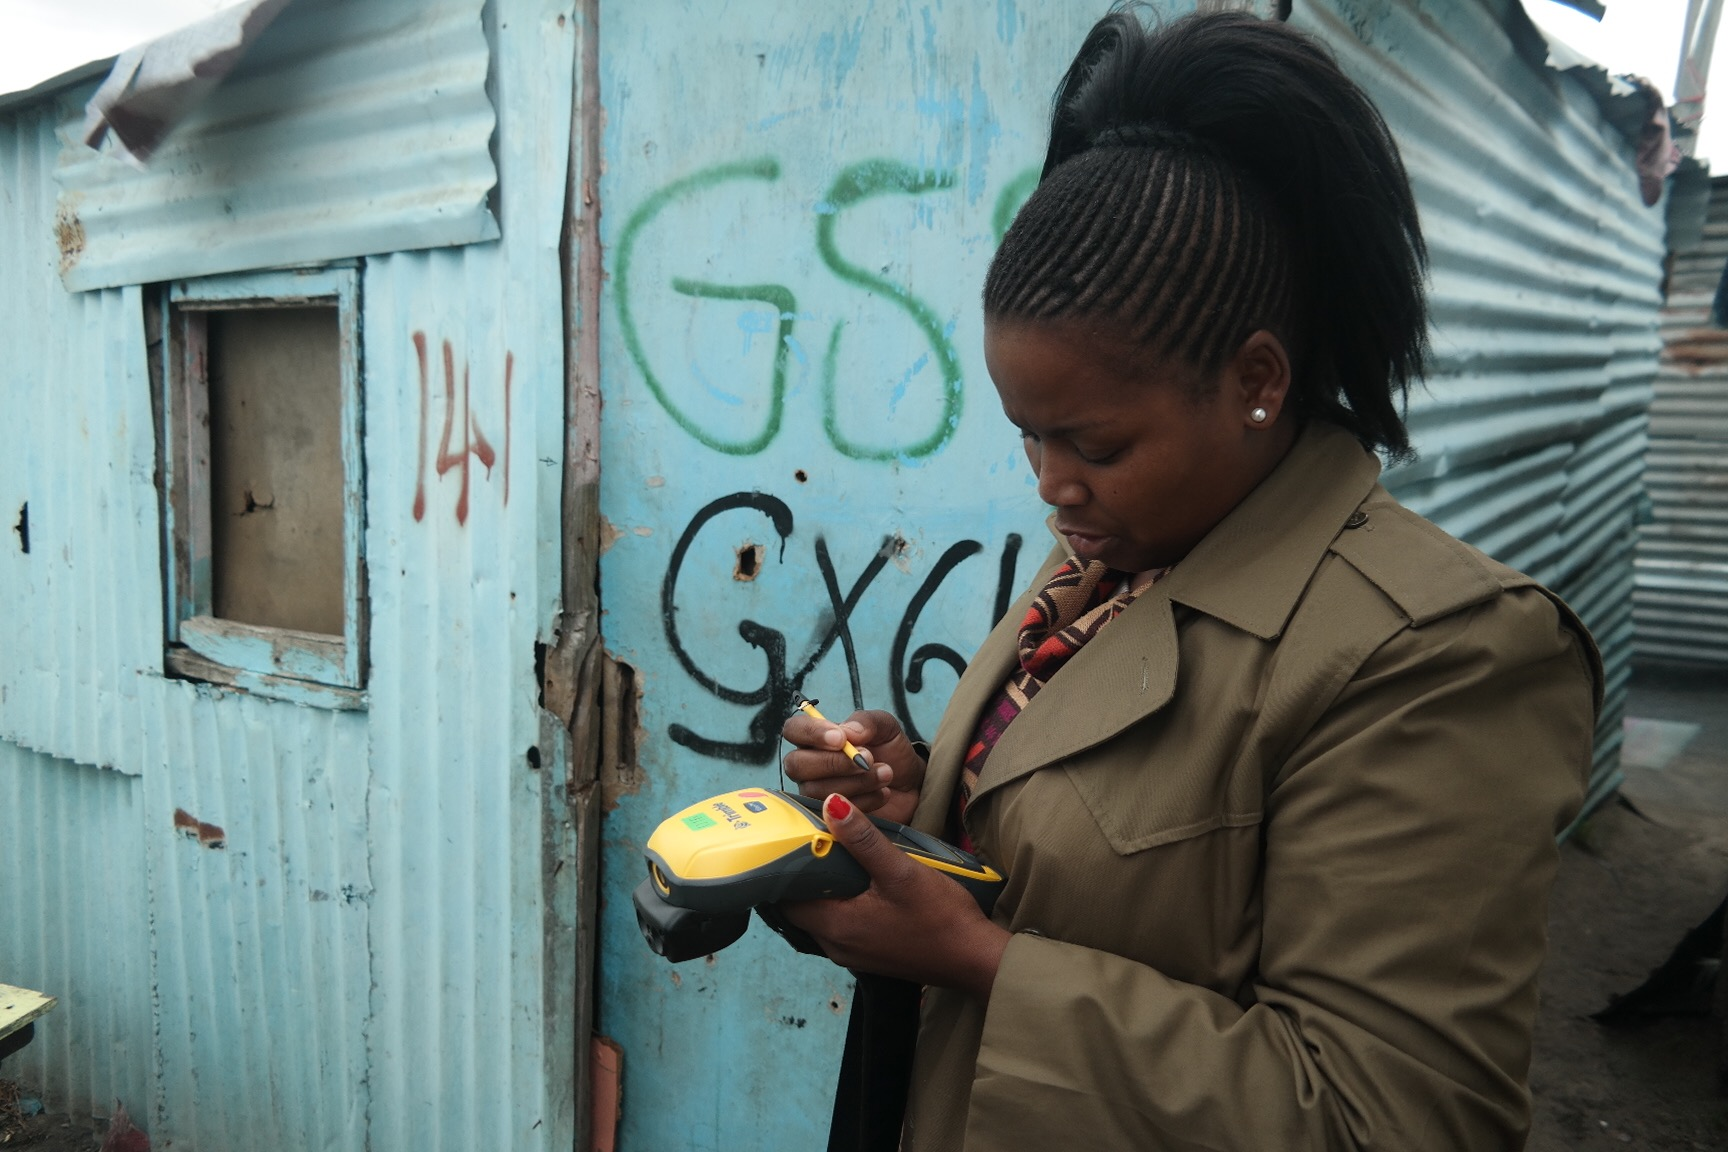 The enumerations teams in Gxagxa get to work, going from shack to shack to conduct the detailed household-level survey